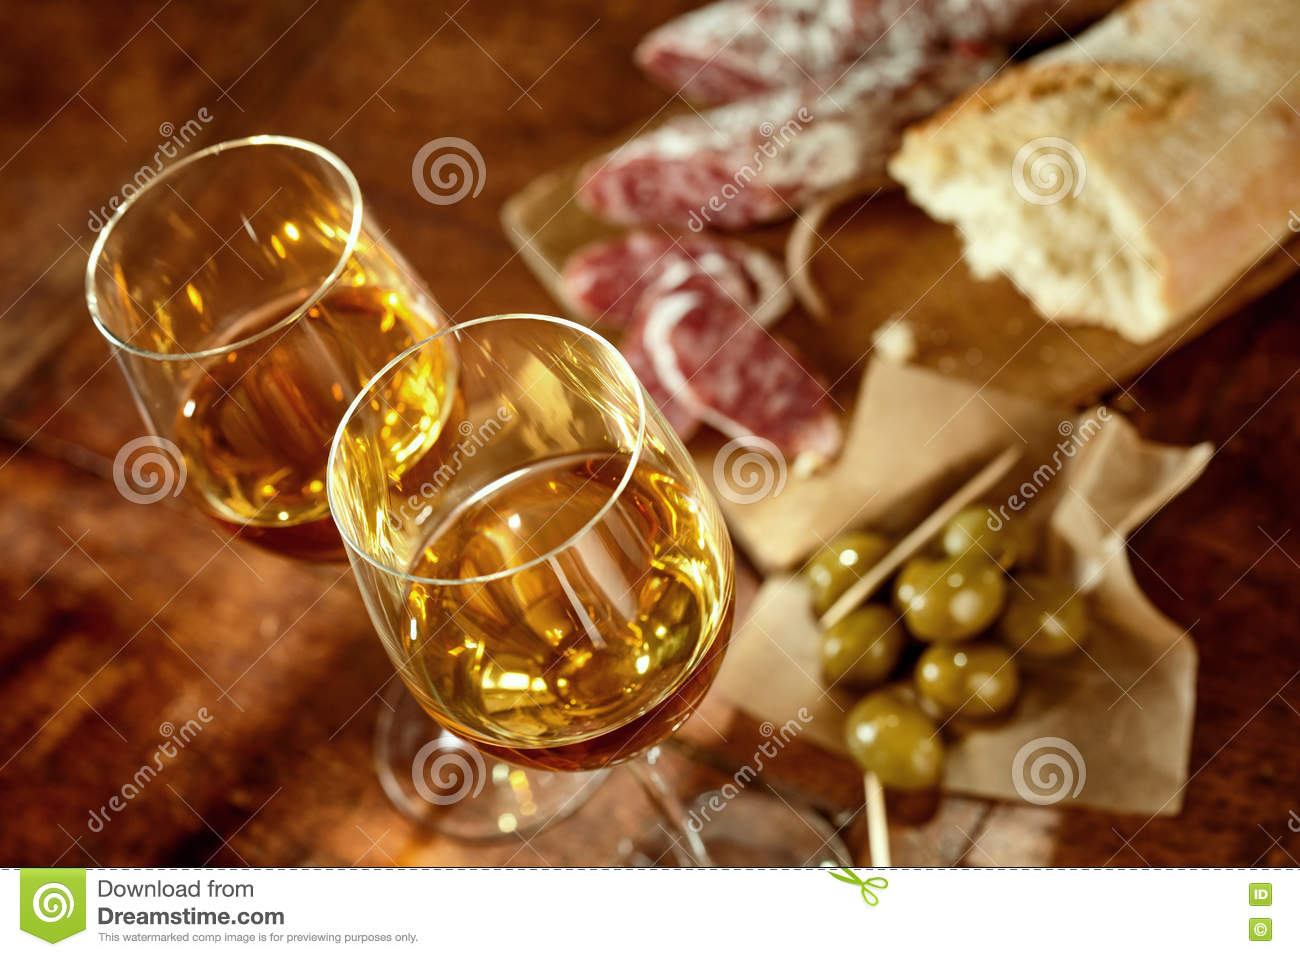 Two glasses of sherry with Spanish tapas